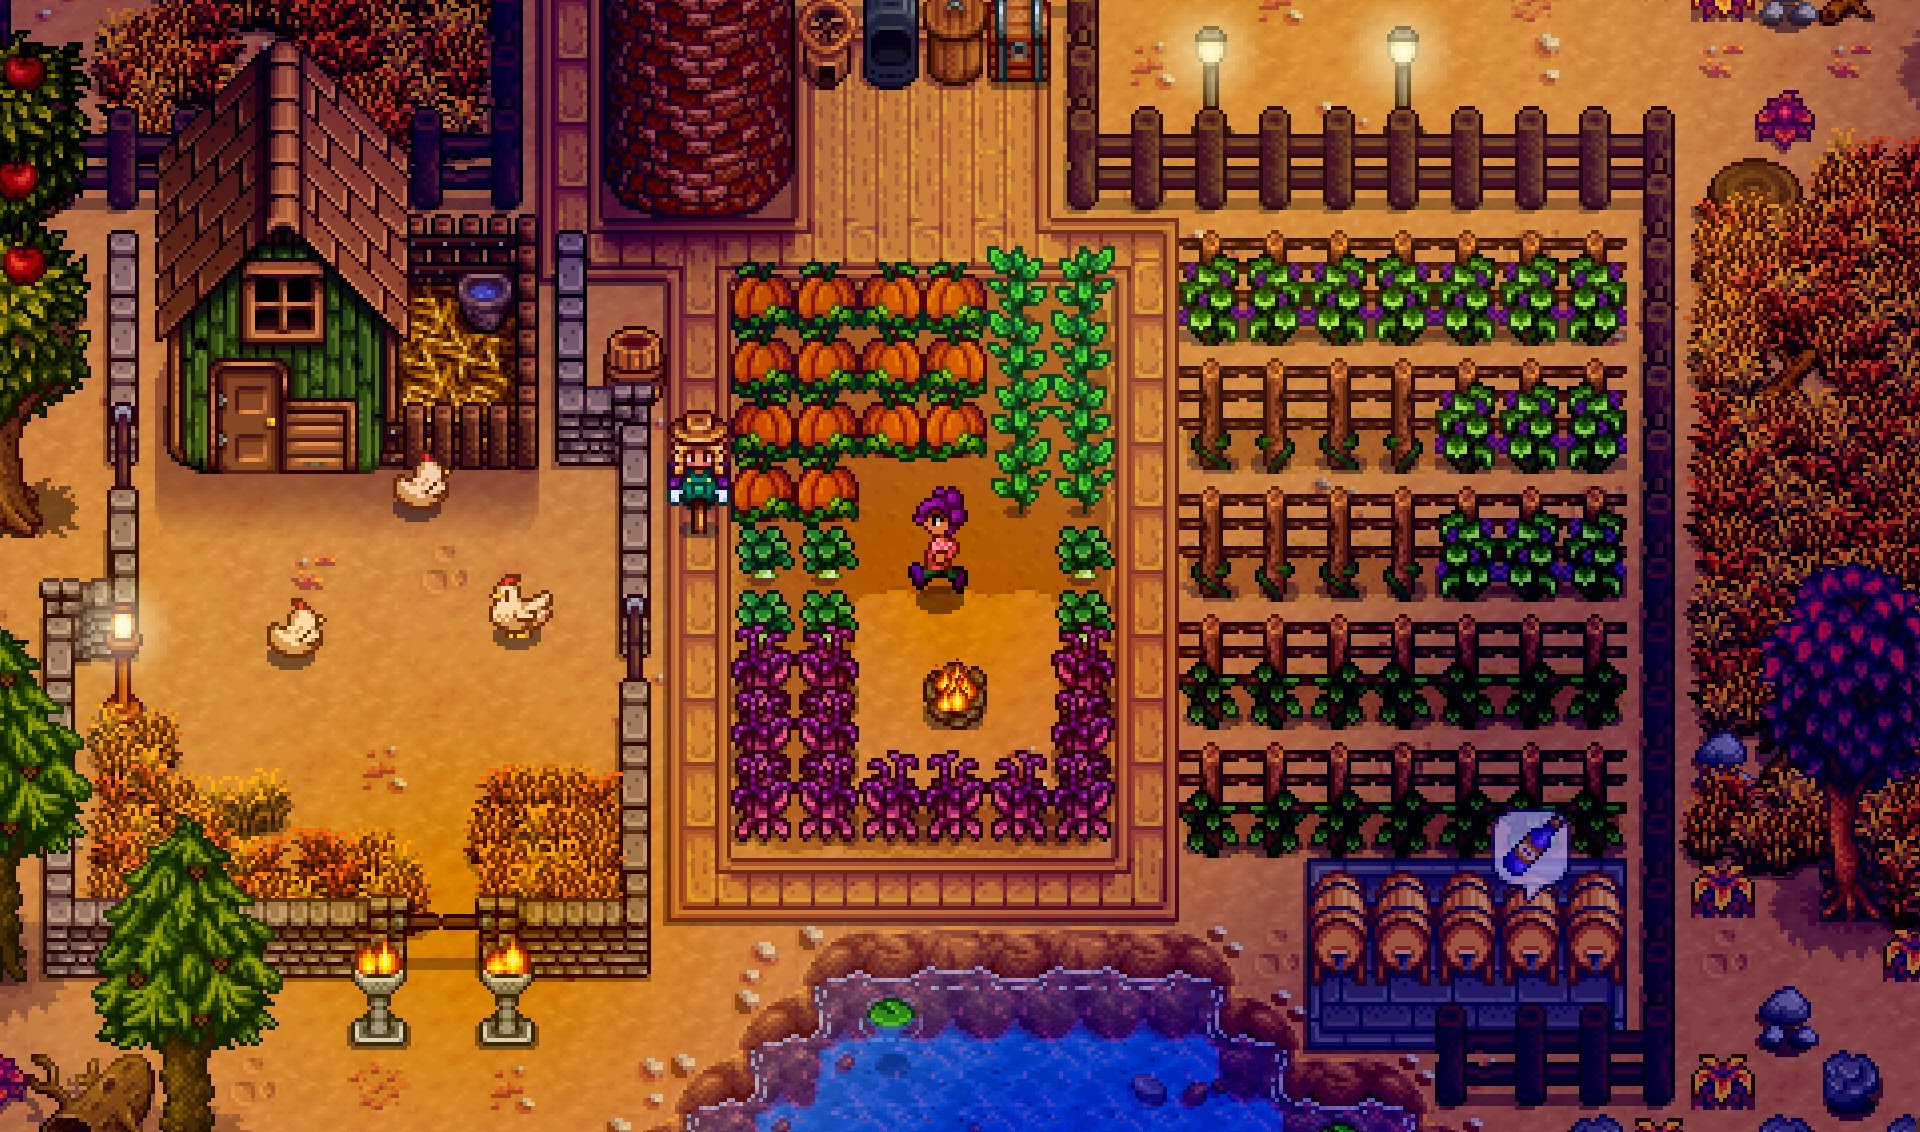 Stardew Valley just hit 'one million downloads' on both iOS and Android